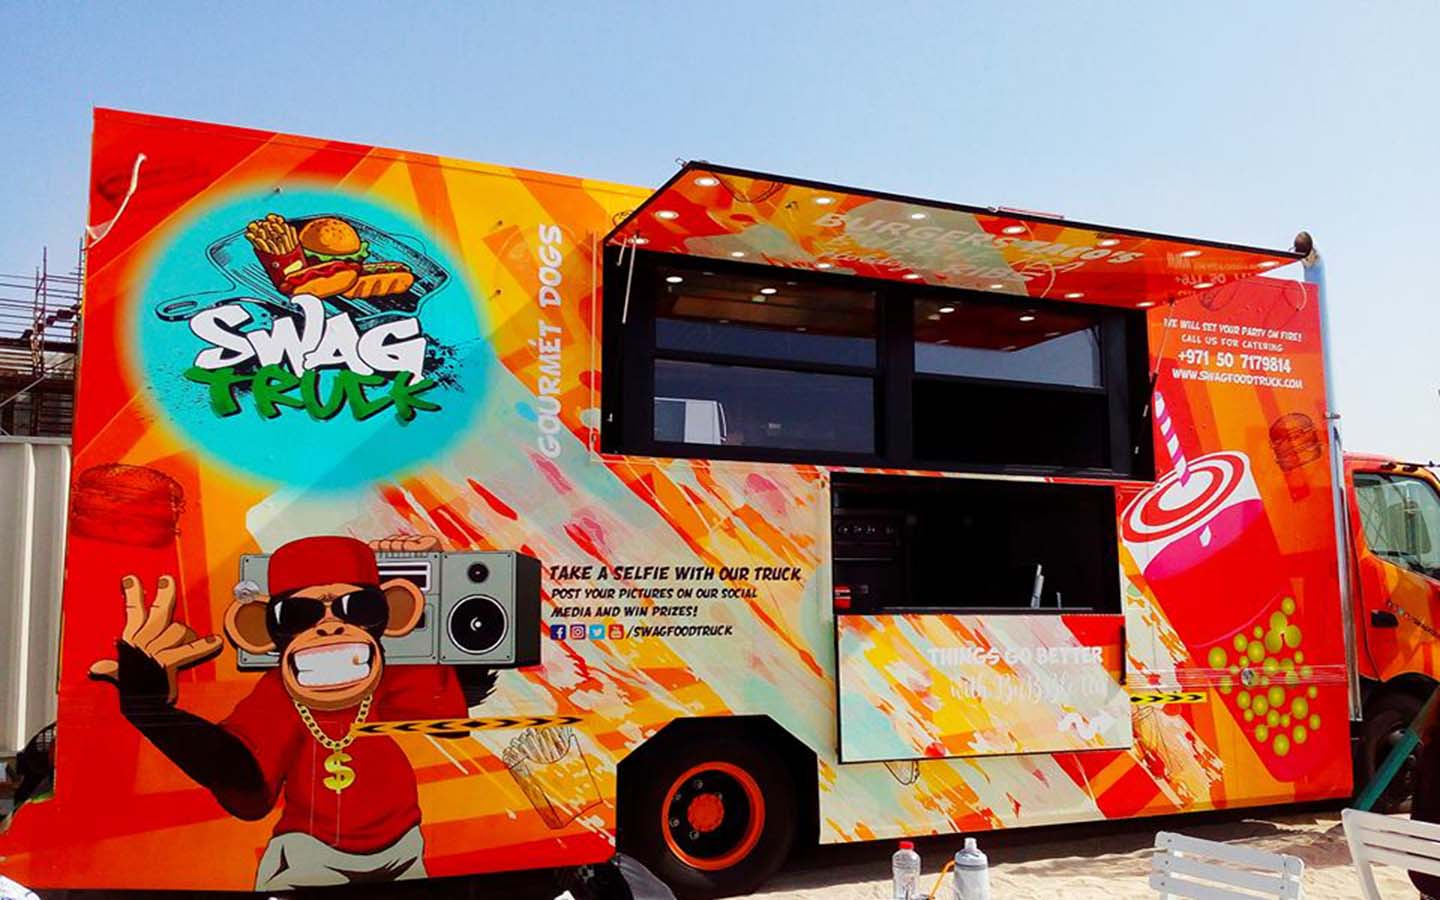 Swag Food Truck